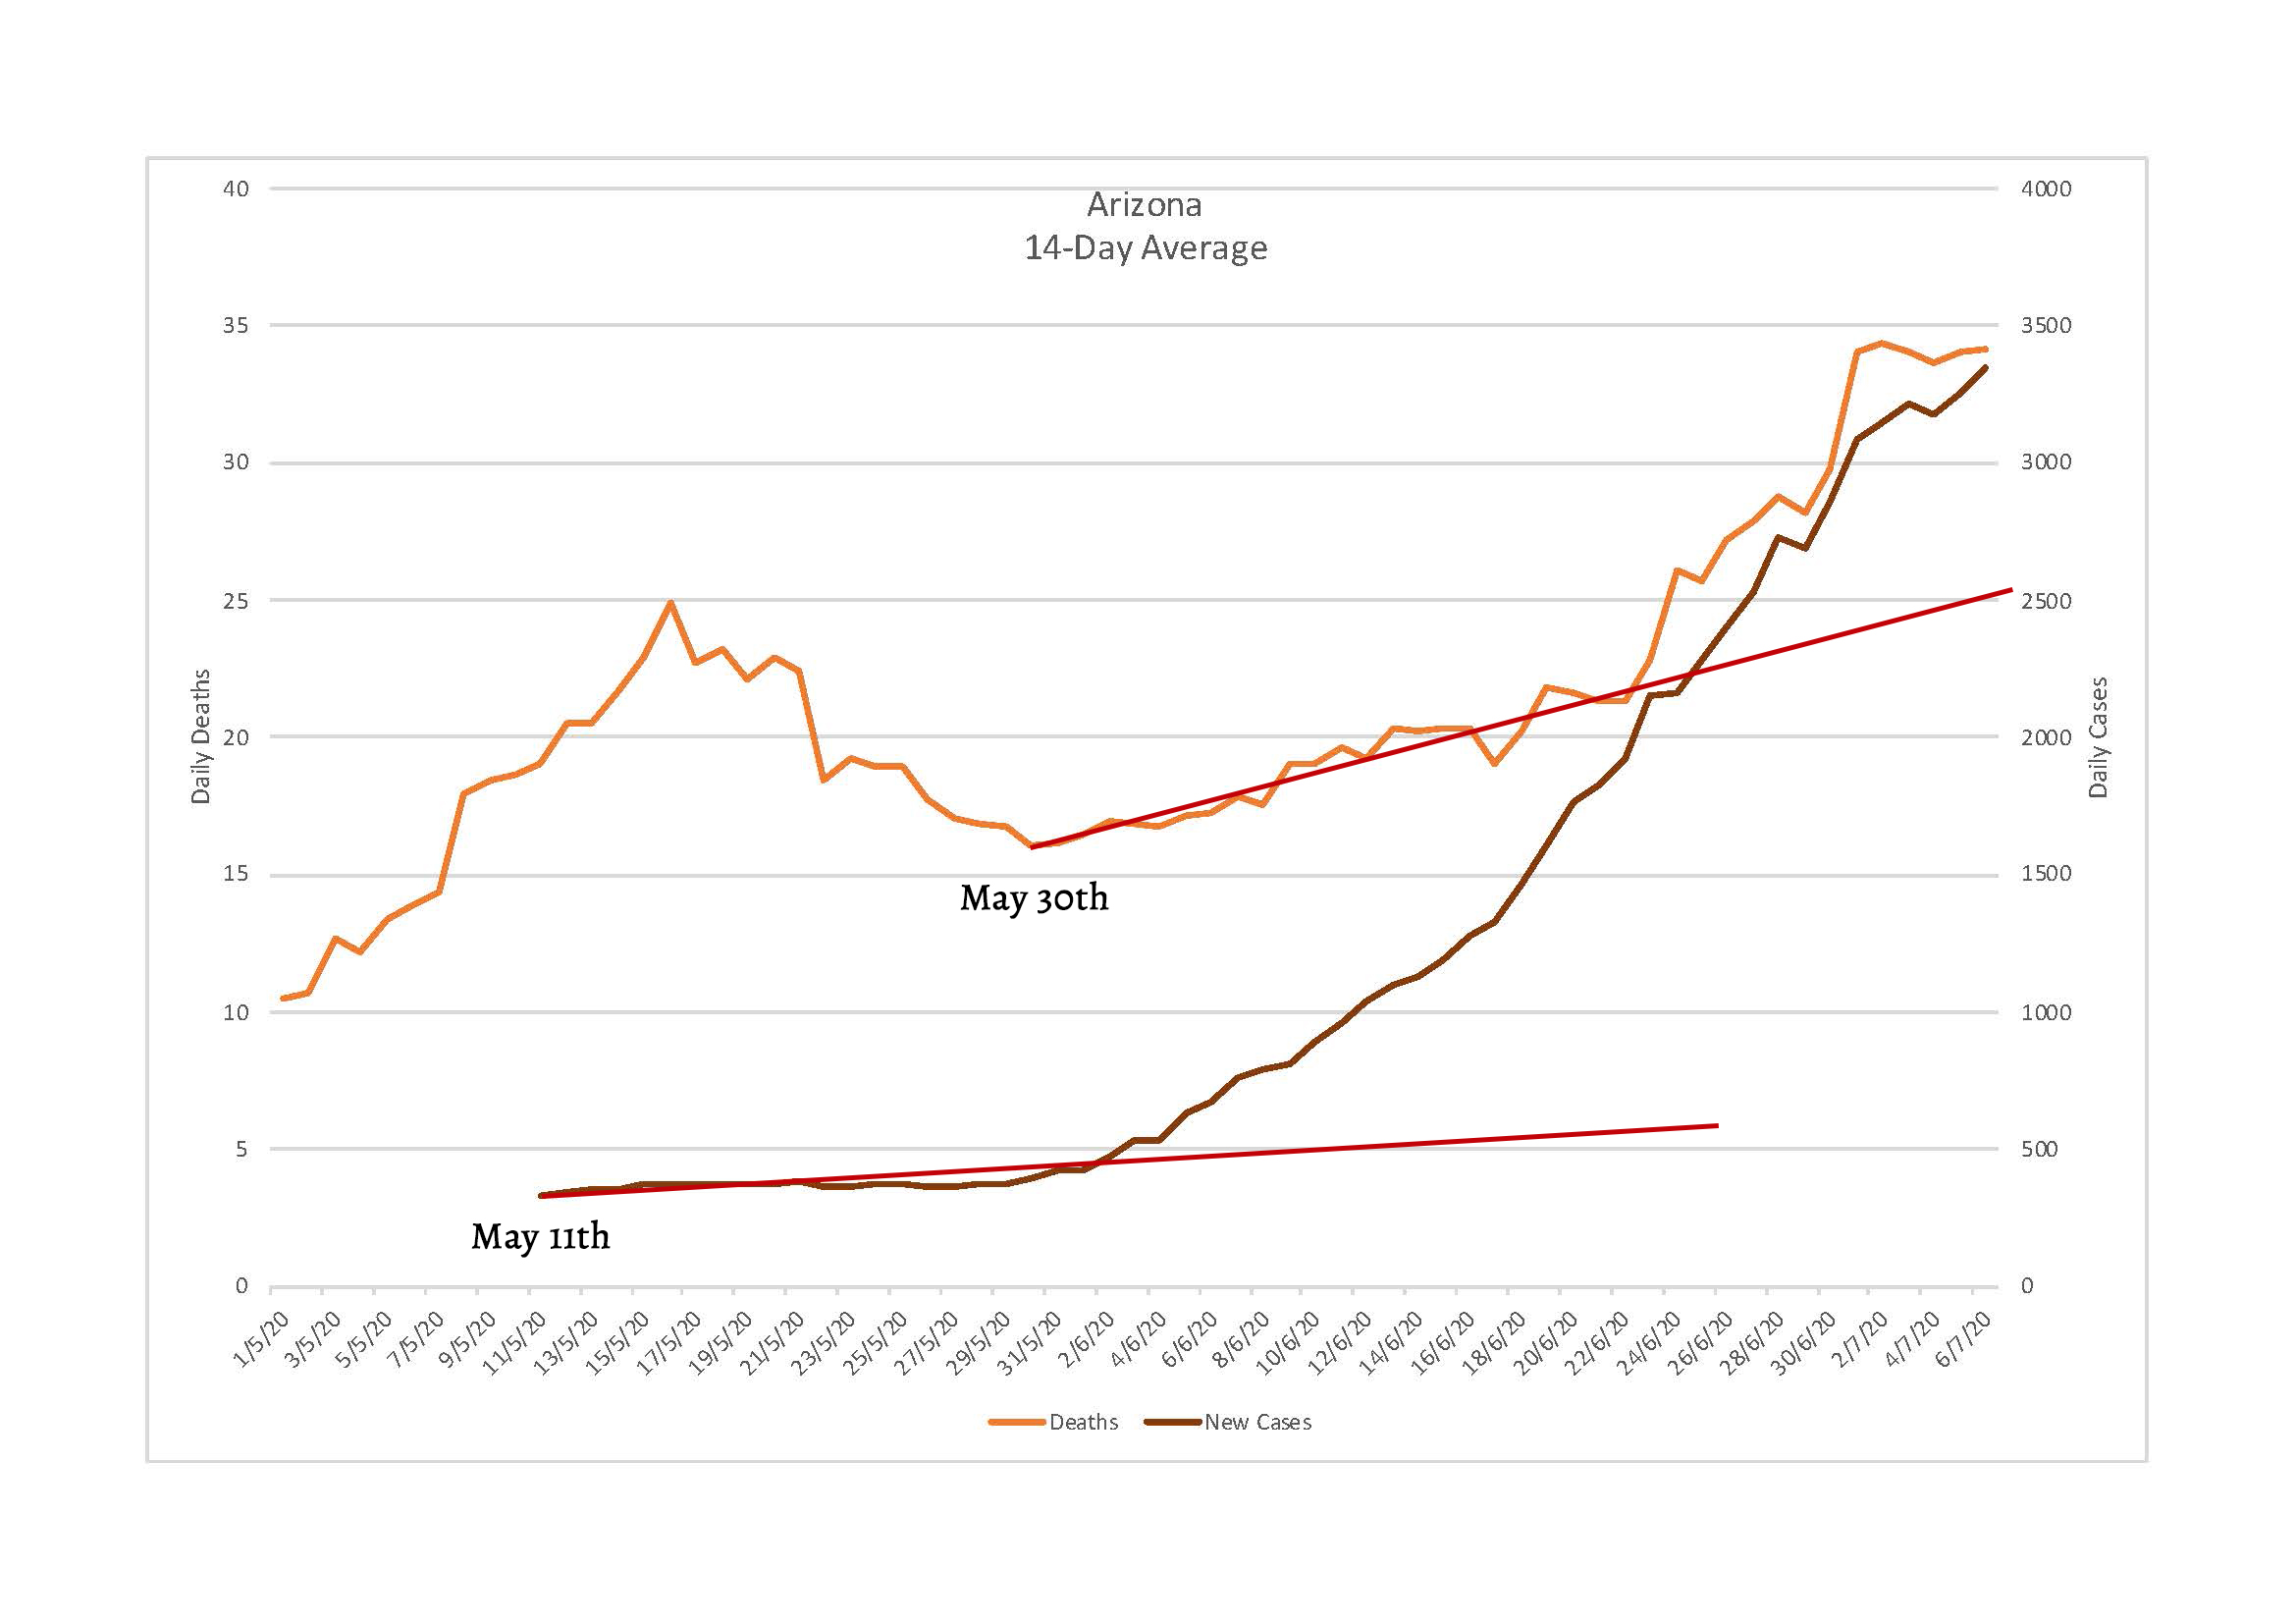 Chart of Arizona daily COVID-19 deaths vs. new cases over time